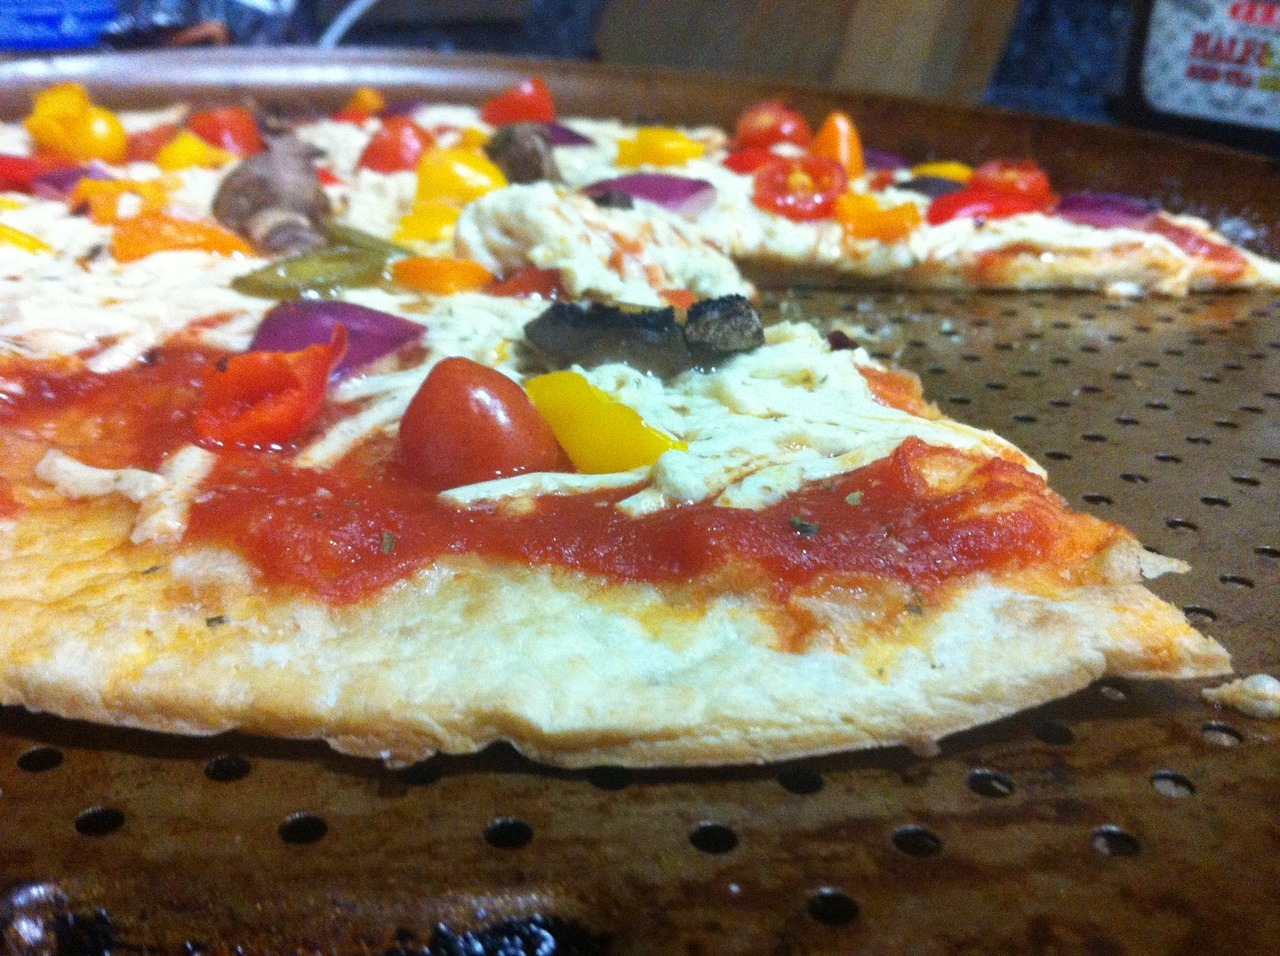 all the other kinds of crust can go home, thin crust is the clear winner.